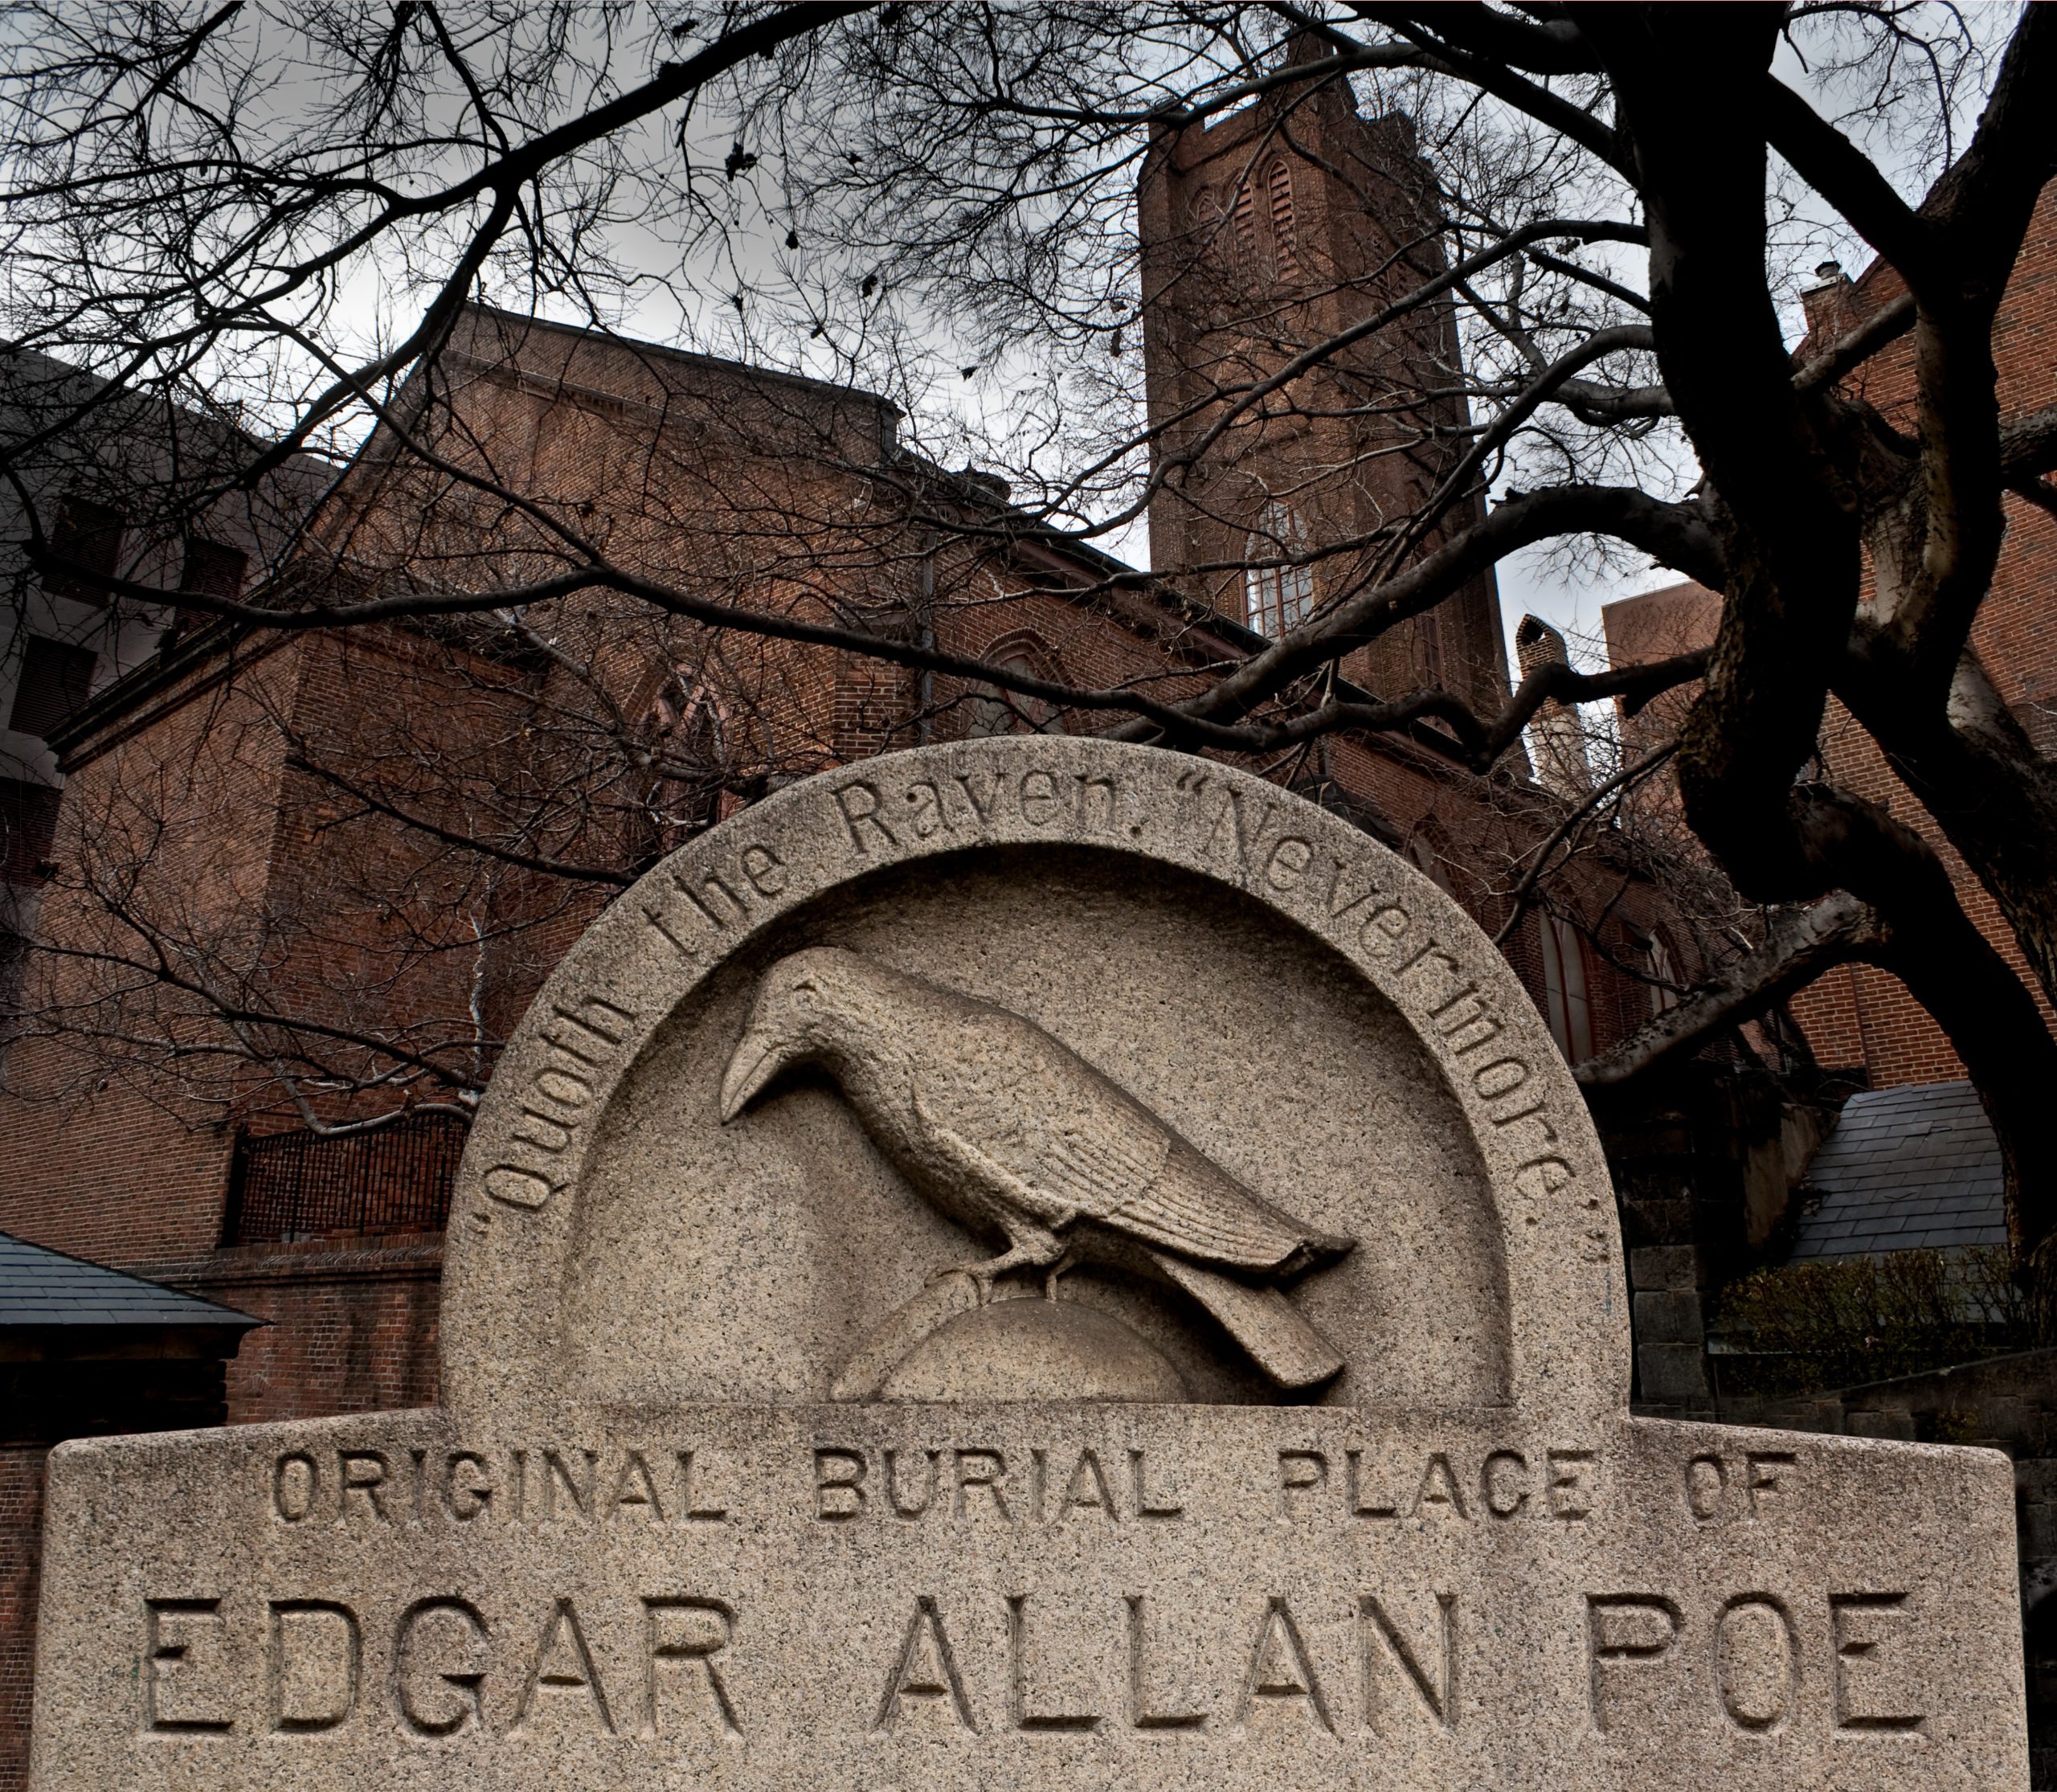 The exterior of Edgar Allen Poe's house - famous Maryland residents